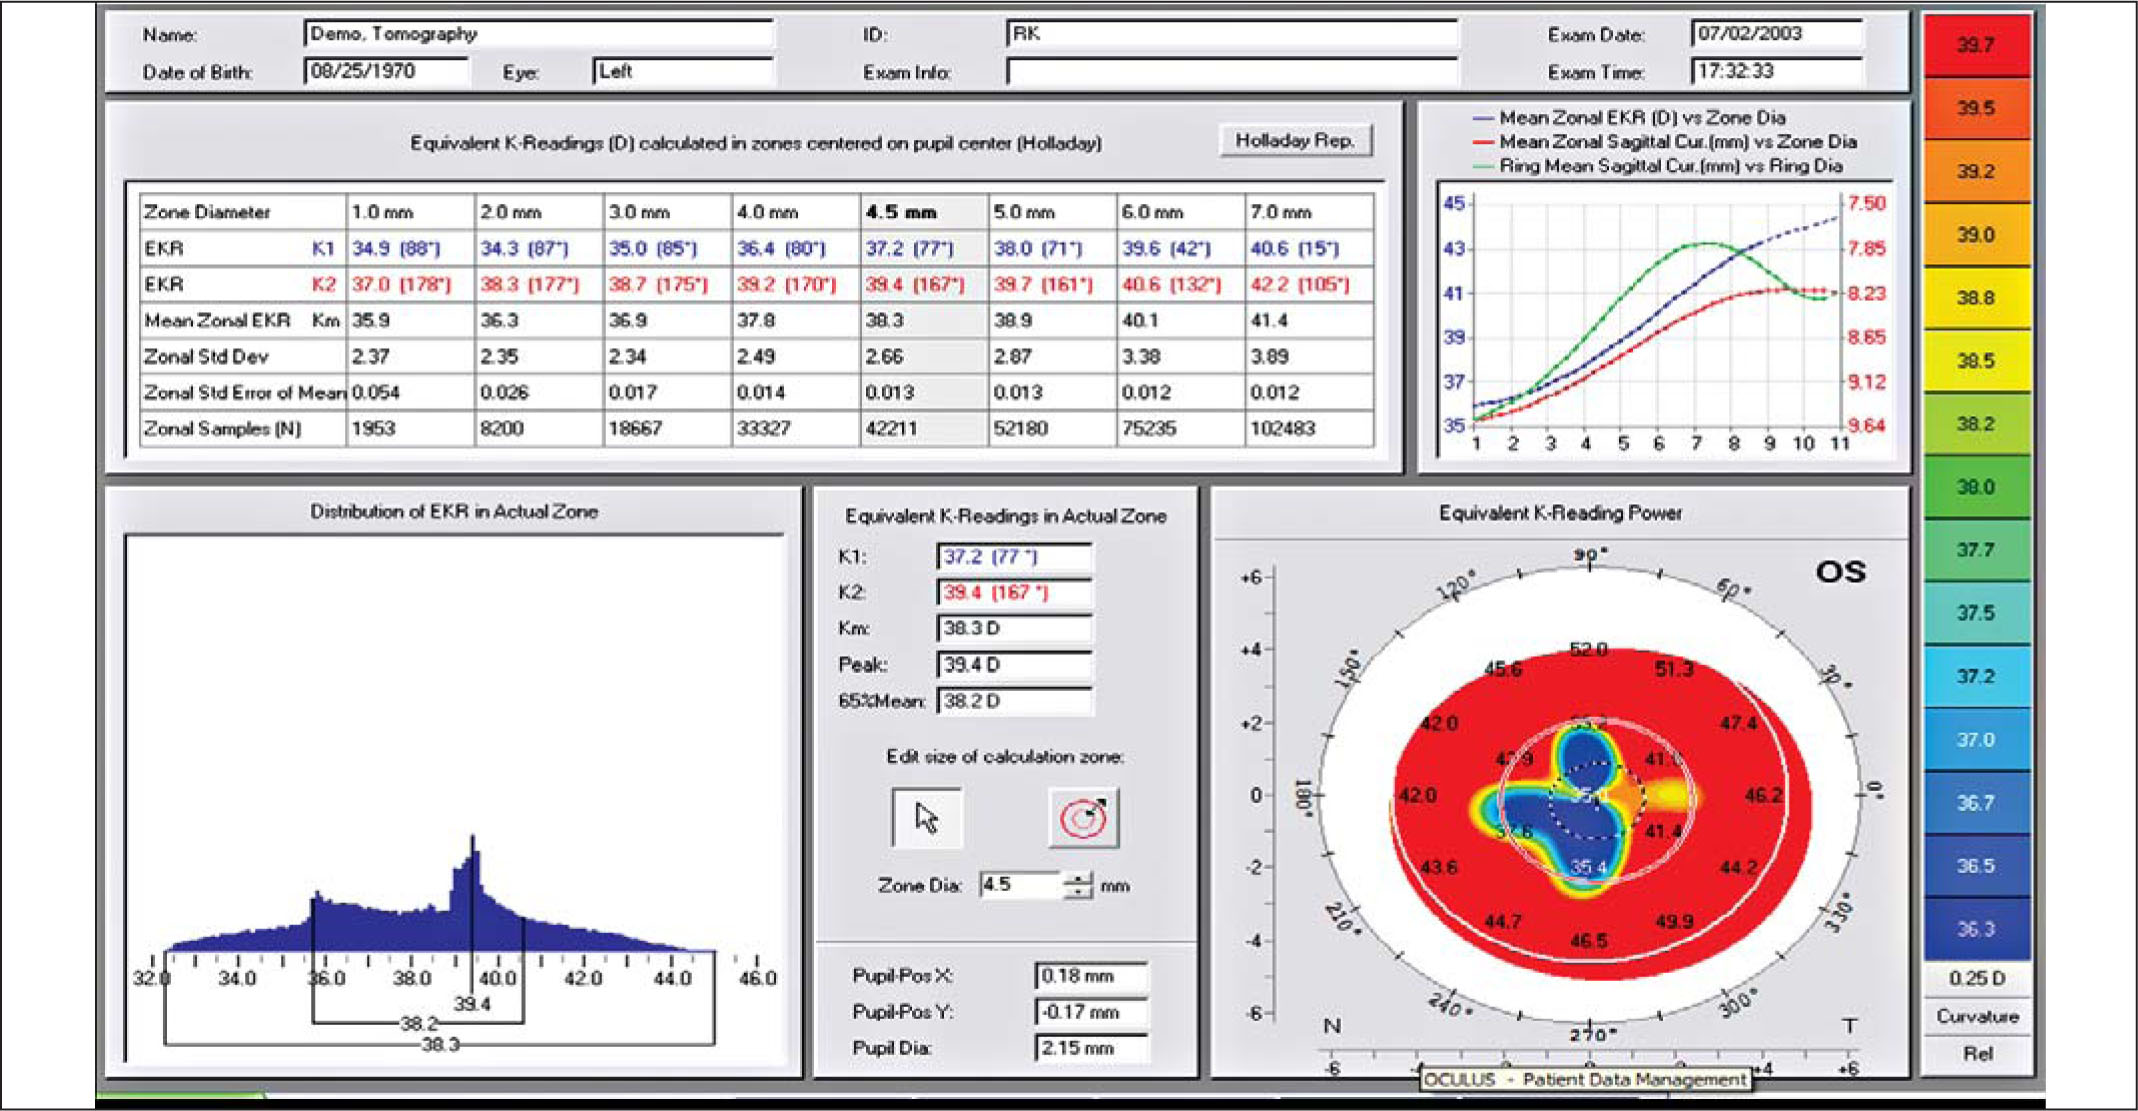 Detailed Report of the Equivalent K-Reading (EKR) for an Example Radial Keratotomy (RK) Eye. The Mean Zonal Value Is Shown in the Table in the Gray Shaded Central Column Under the 4.5-mm Zone. There Are ~42,000 Points Used to Determine the Mean Value. The Frequency Distribution of Powers over the 4.5-mm Zone Is Shown in the Lower Left Hand Corner. Note the Wide Variation in the Distribution EKR Values (12.70 D, 32.30 to 45.00 D) over the 4.5-mm Zone. The Mean Zonal EKR (D) (dashed Blue Line) Versus the Zone Diameter Is Shown Graphically in the Upper Right Hand Corner.